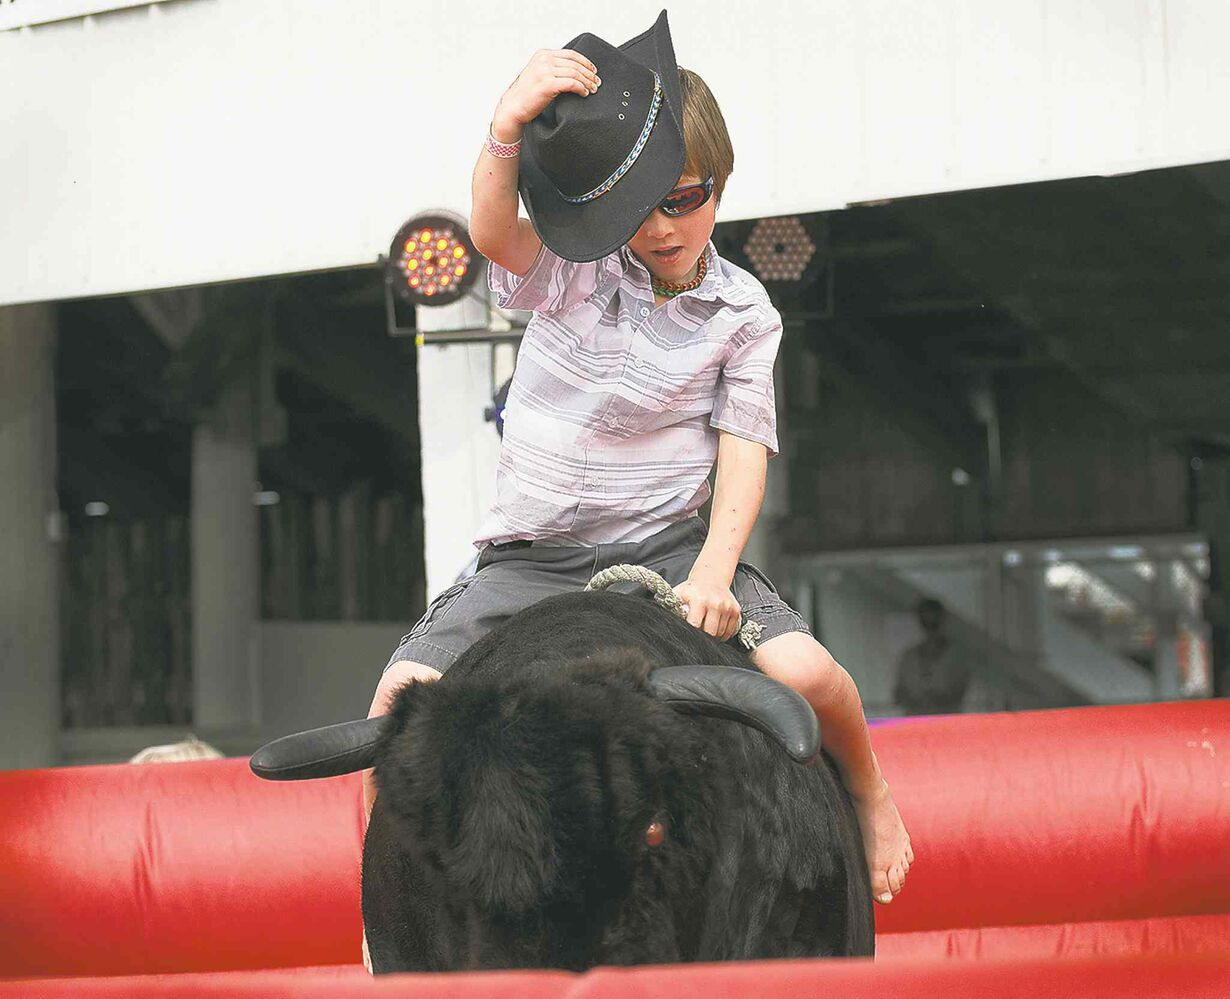 Seven-year-old  Tannet Treichel from Darlingford, Man., channels  his inner cowboy  as he rides the  mechanical bull  at the Morris  Stampede  Thursday. The stampede runs until Sunday. (Sarah Taylor / Winnipeg Free Press)